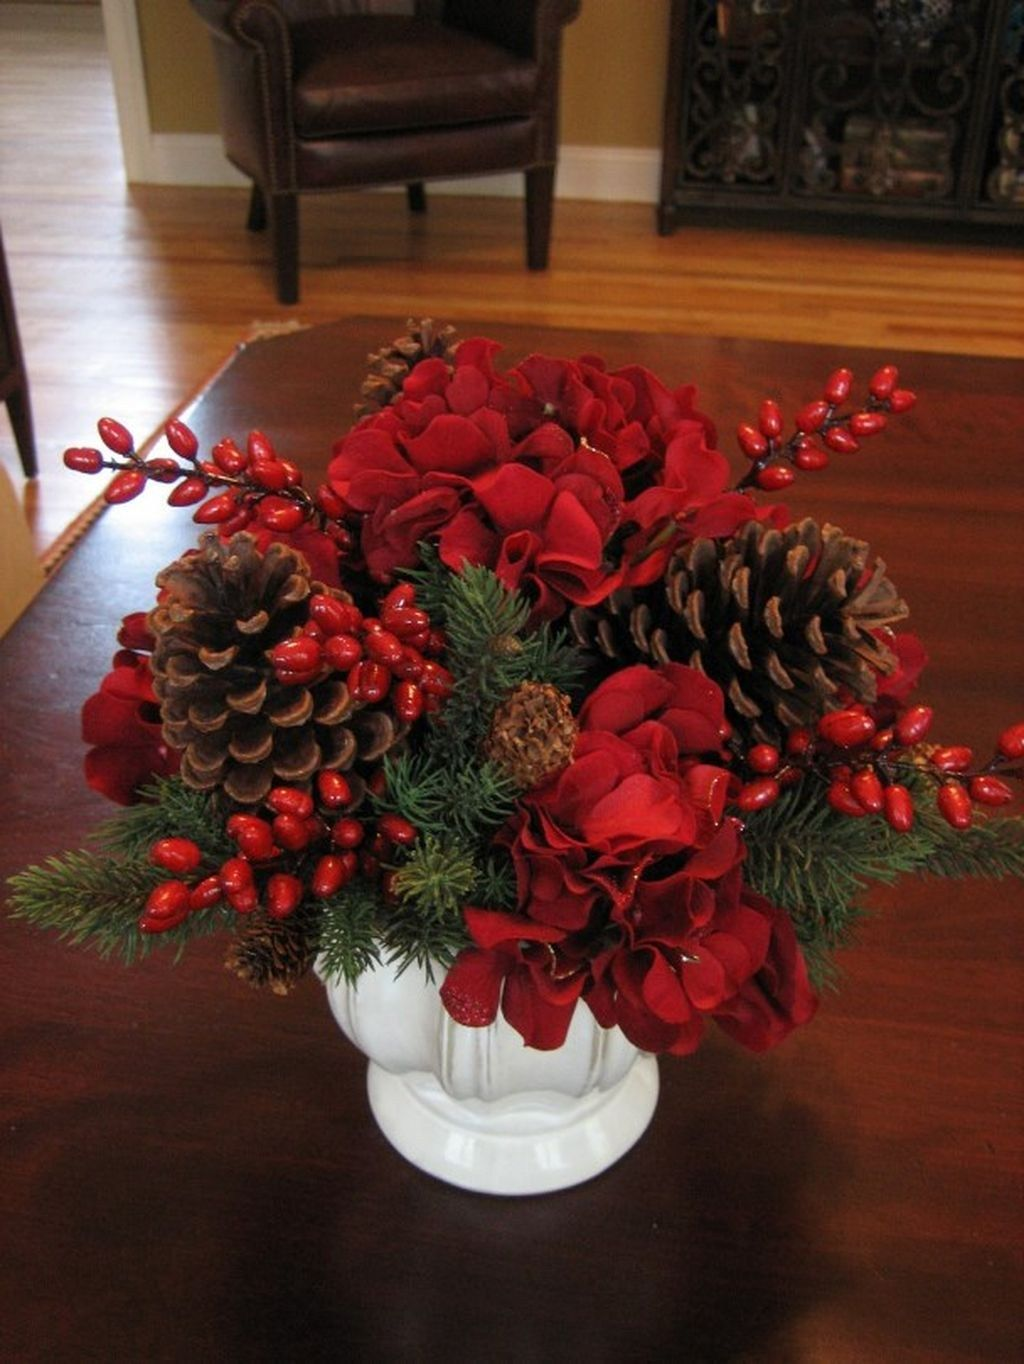 Easy And Simple Christmas Table Centerpieces Ideas For Your Dining Room 09 Christmas Flower Arrangements Christmas Flower Decorations Christmas Centers